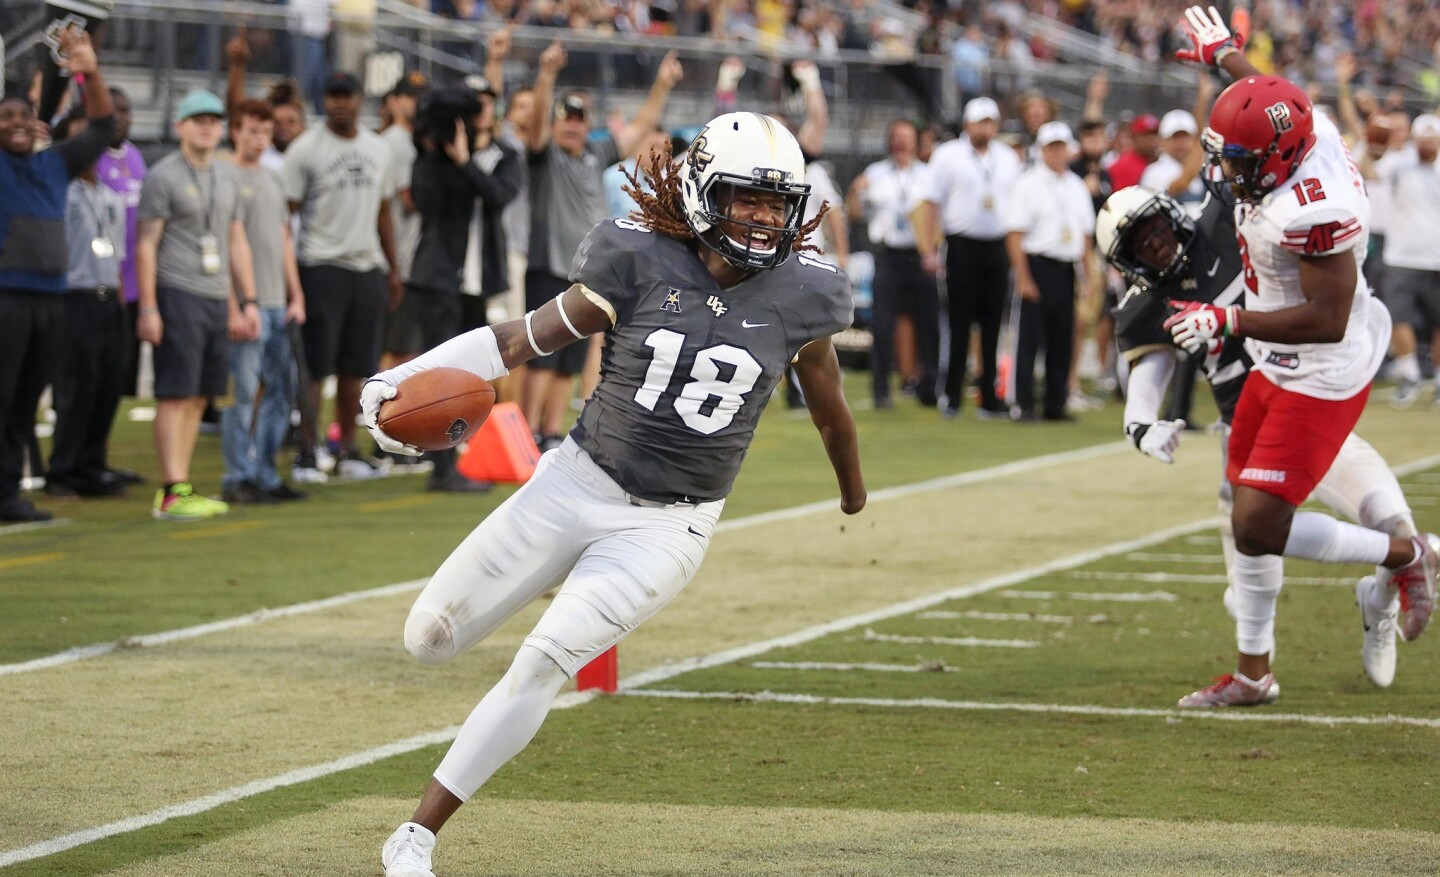 UCF linebacker Shaquem Griffin (18) returns a fumble for a touchdown during the Austin Peay at UCF college football game at Spectrum Stadium in Orlando on Saturday, October 28, 2017. (Stephen M. Dowell/Orlando Sentinel)